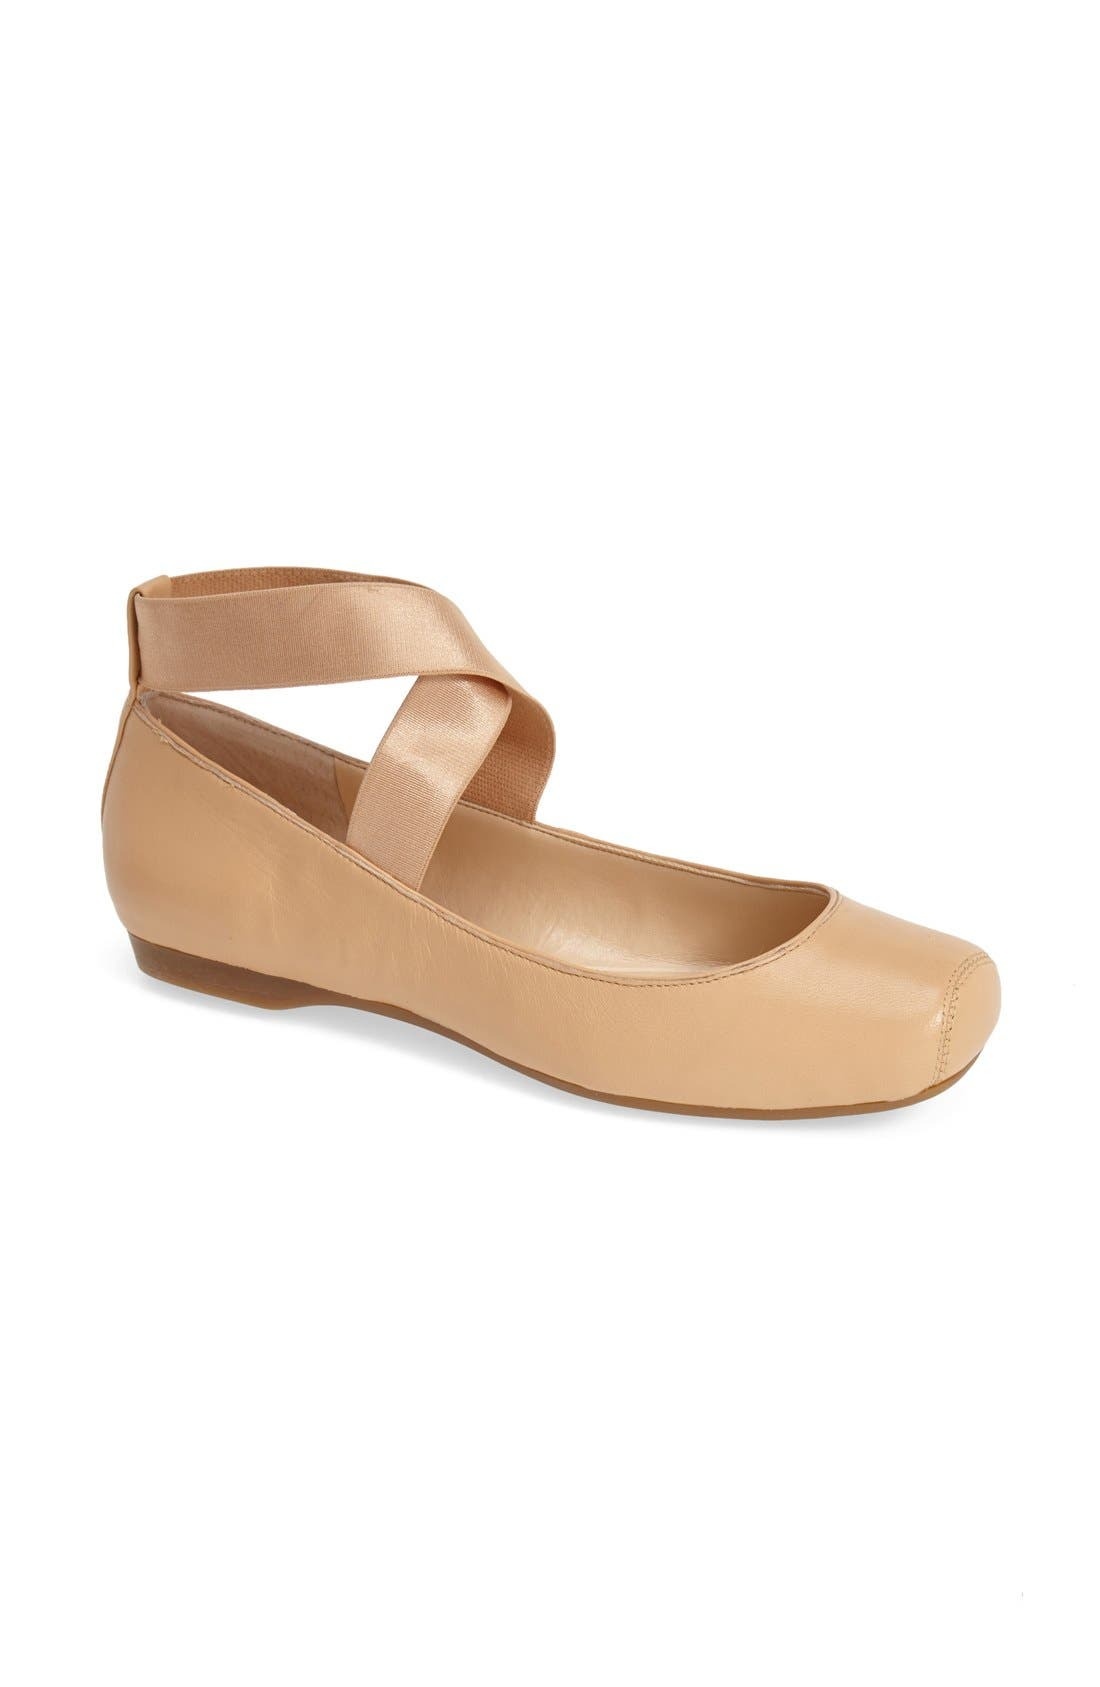 Alternate Image 1 Selected - Jessica Simpson 'Mandalaye' Leather Flat